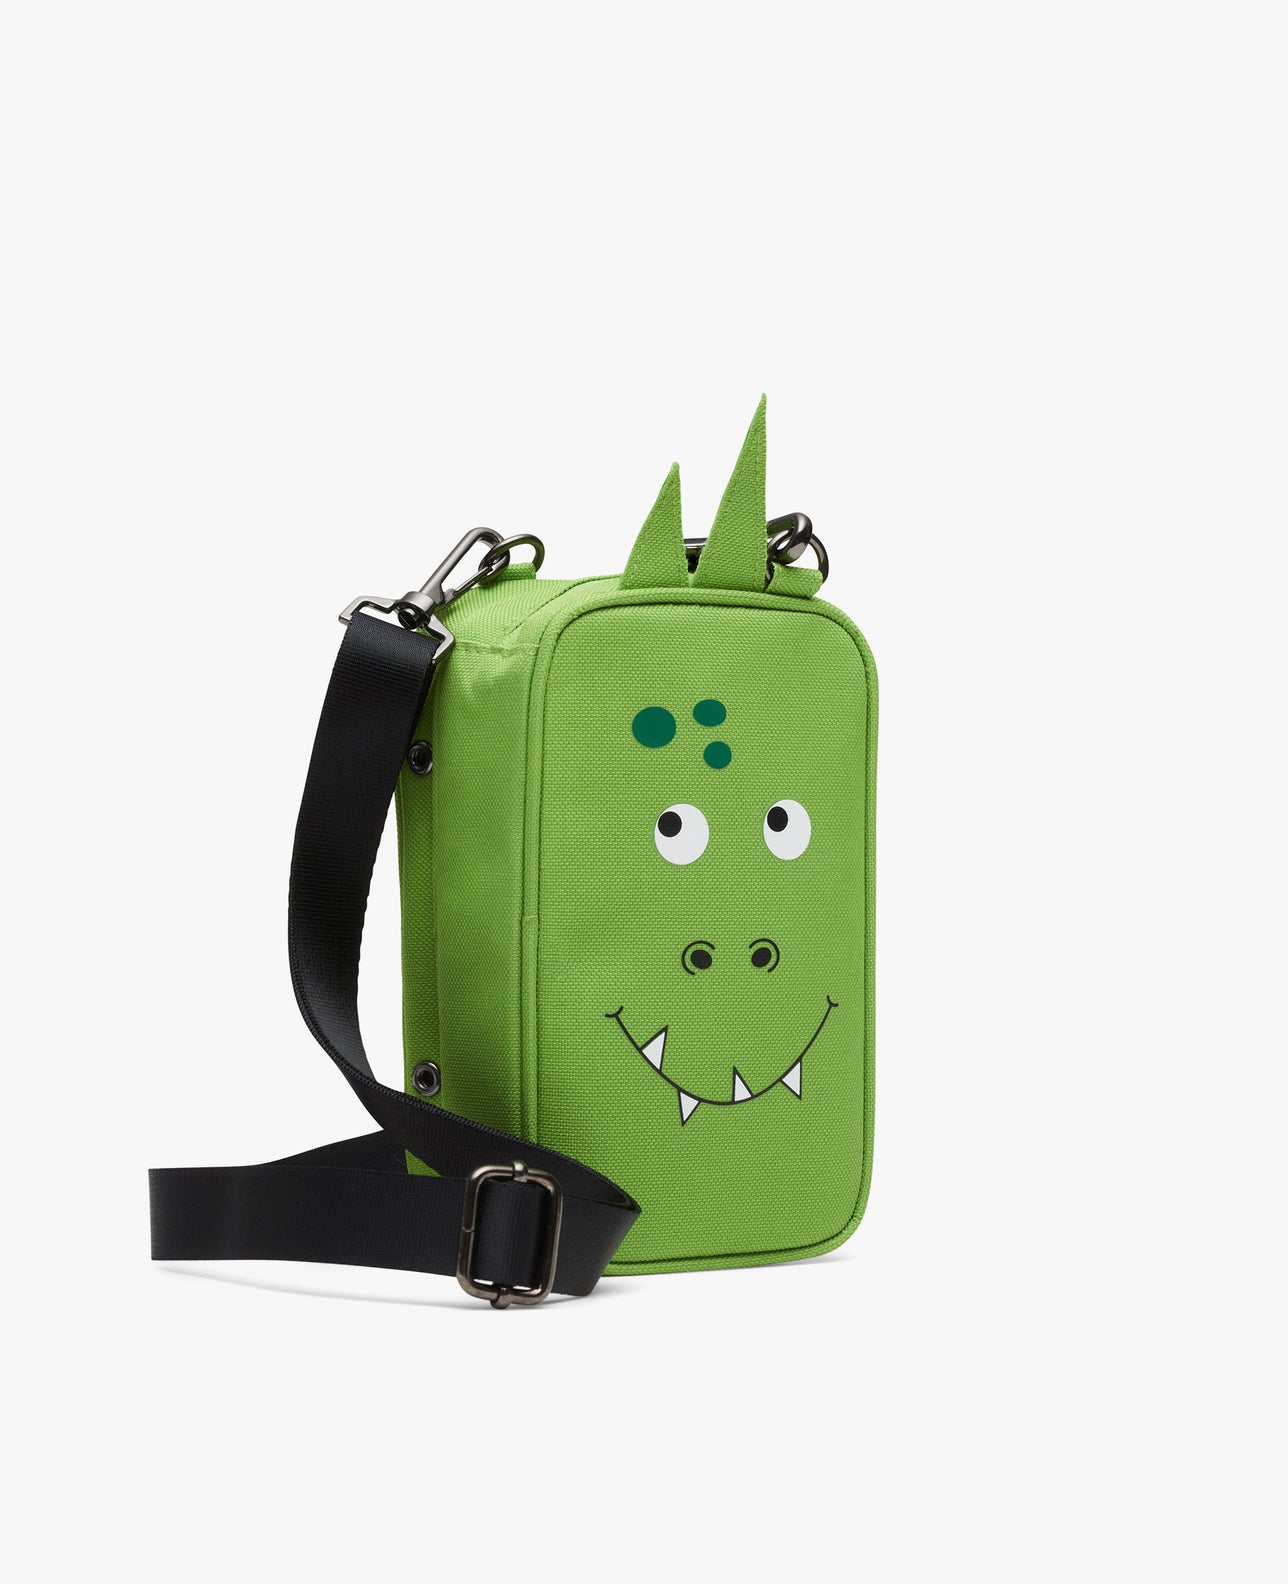 Dinosaur Diabetes Case (Special 20% OFF Show Price!)